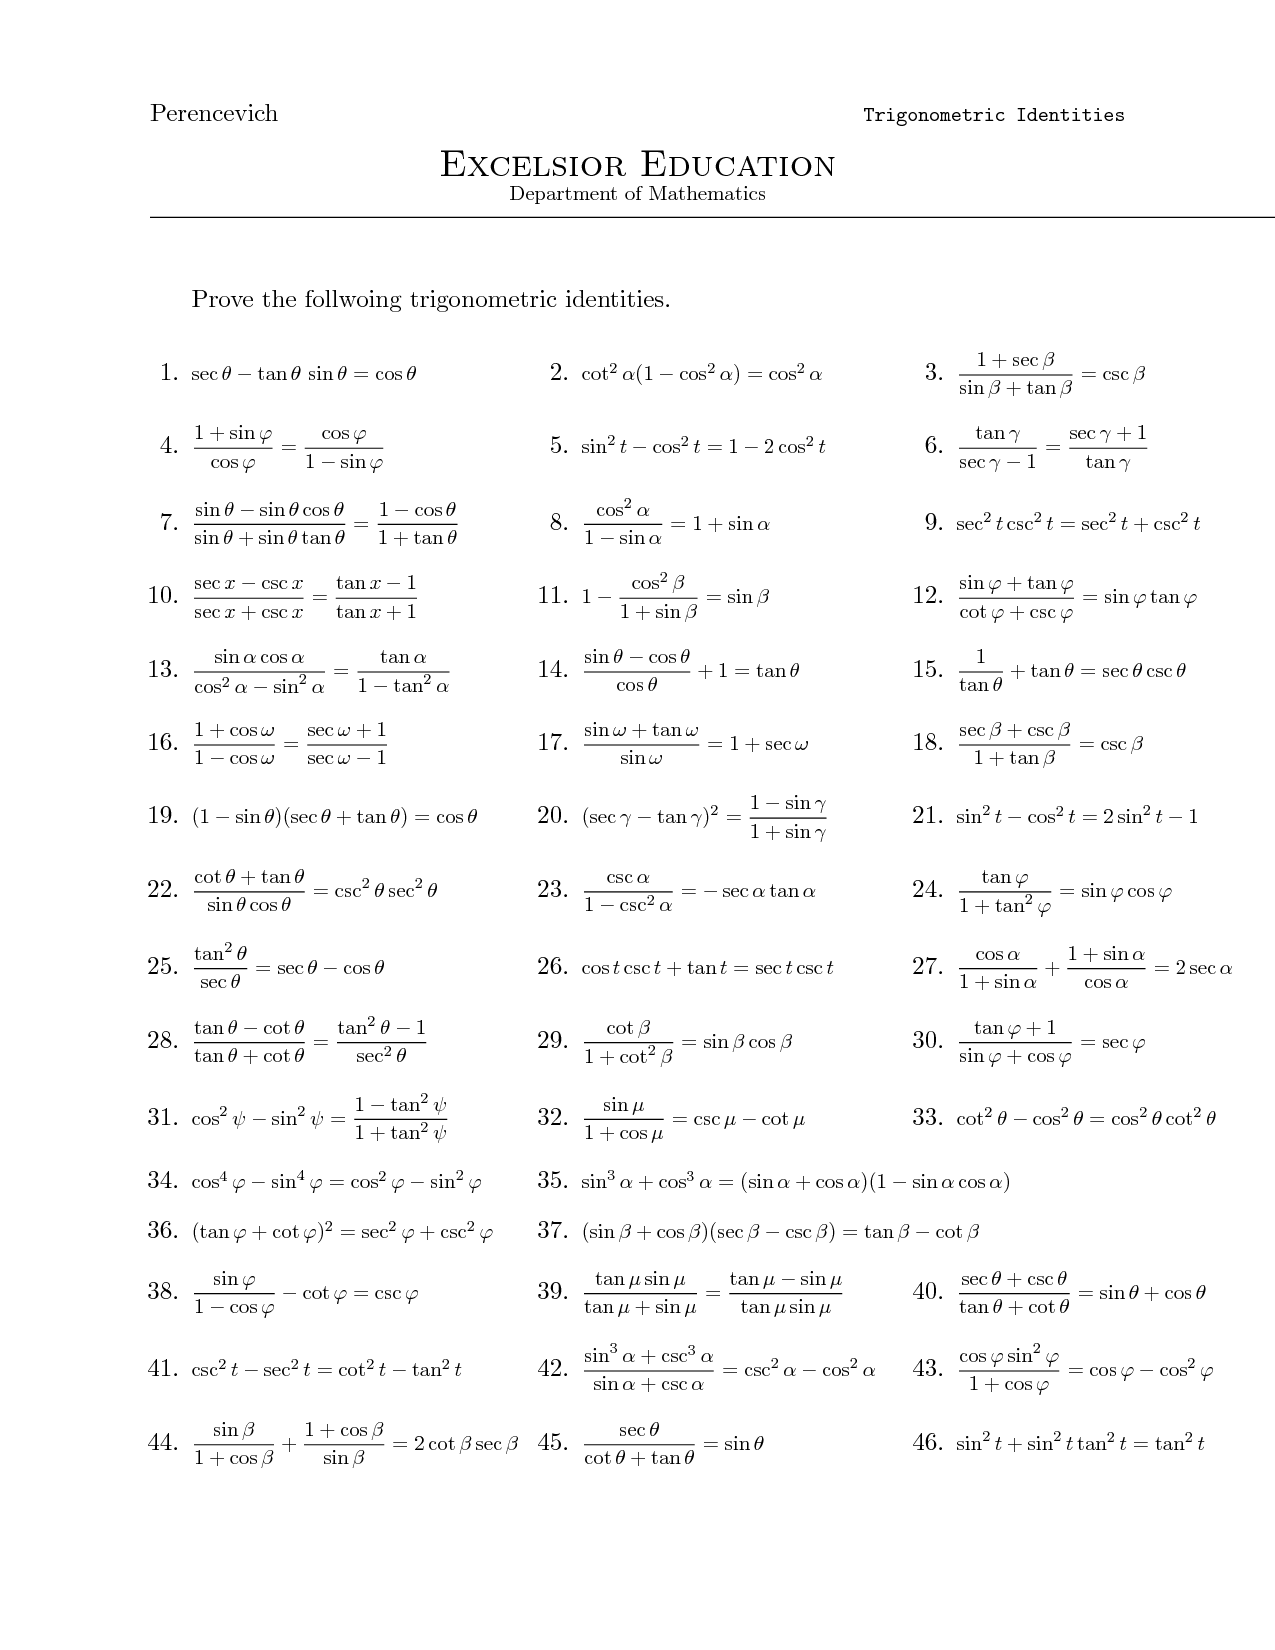 Printables Trig Identities Worksheet trig identities cut ups pre calculus pinterest trigonometry identity problems